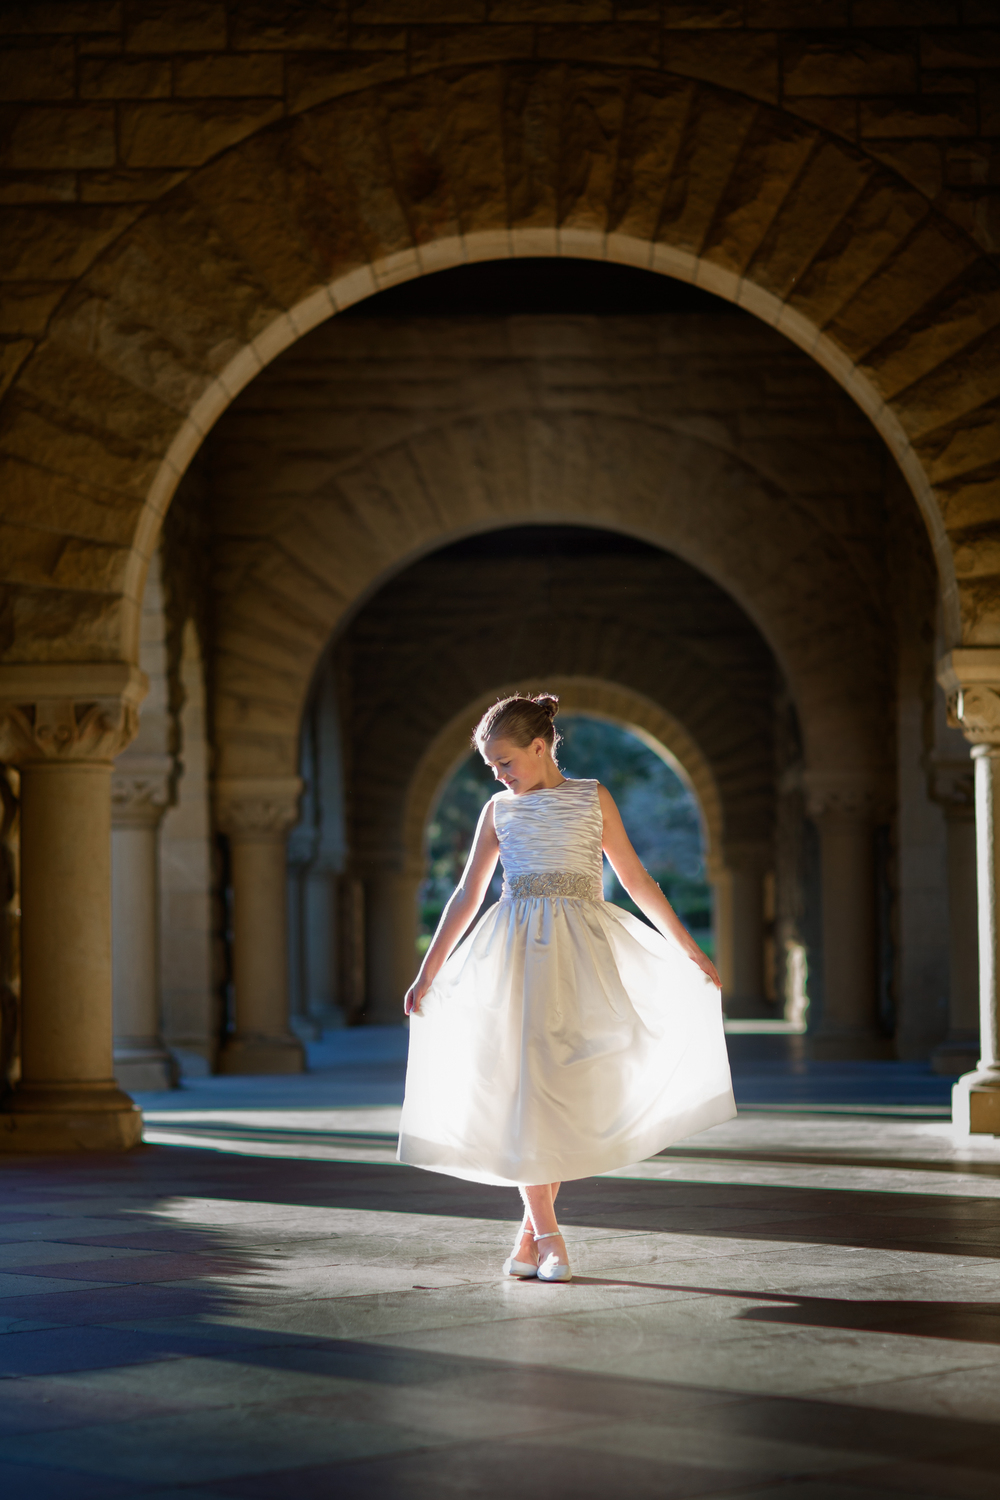 first communion photo under arch by photographer Abel Sanchez.jpg